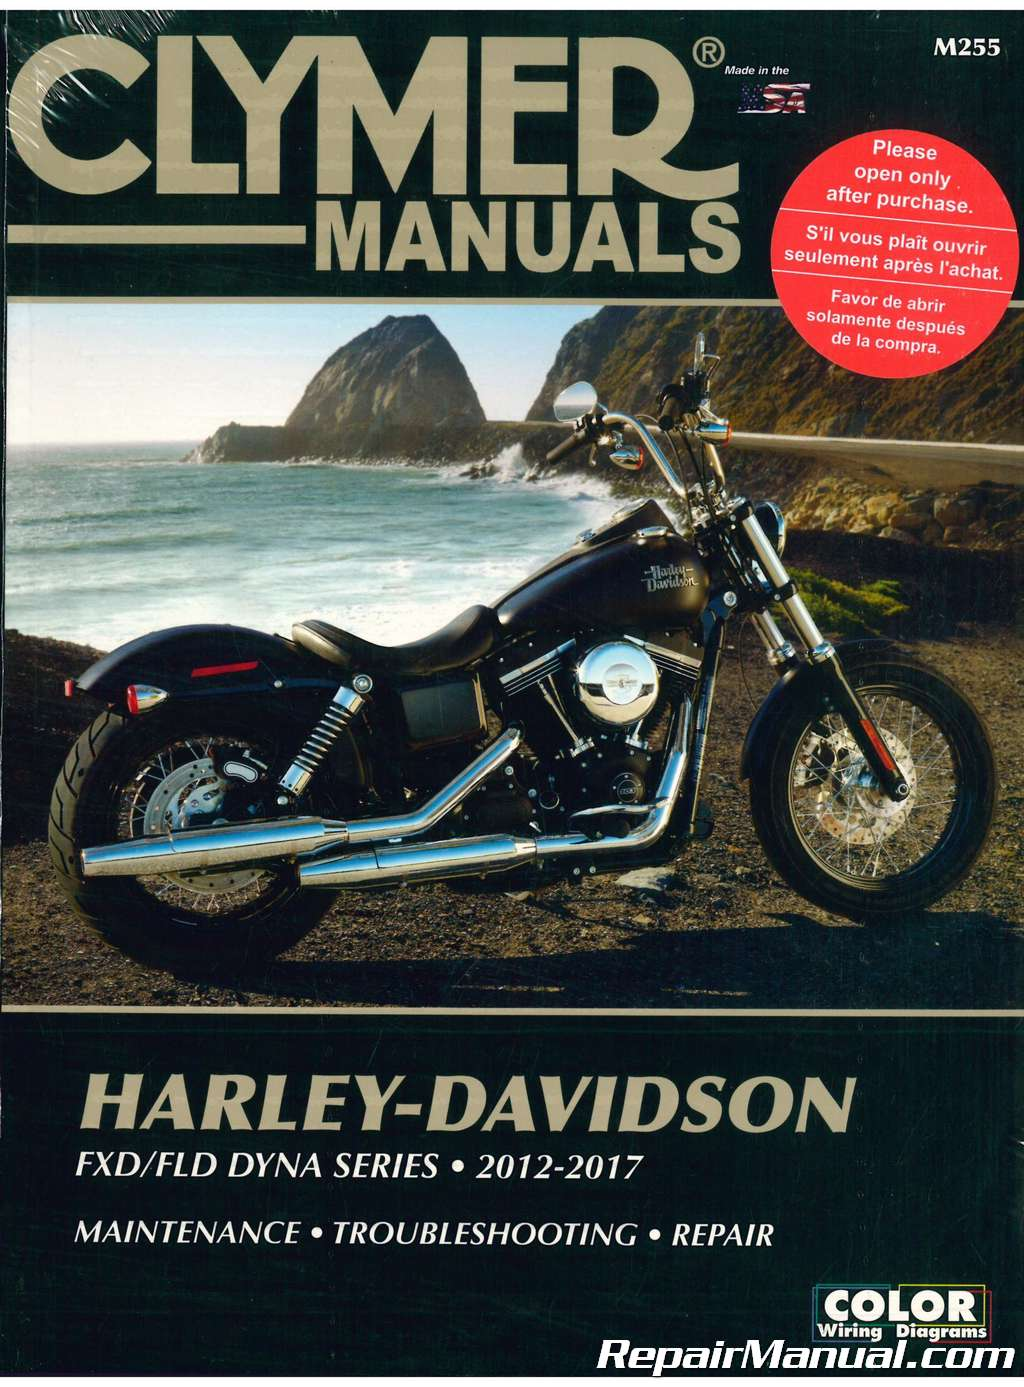 Clymer Harley Davidson FXD FLD Dyna Series 2012-2017 Motorcycle Repair  Manual